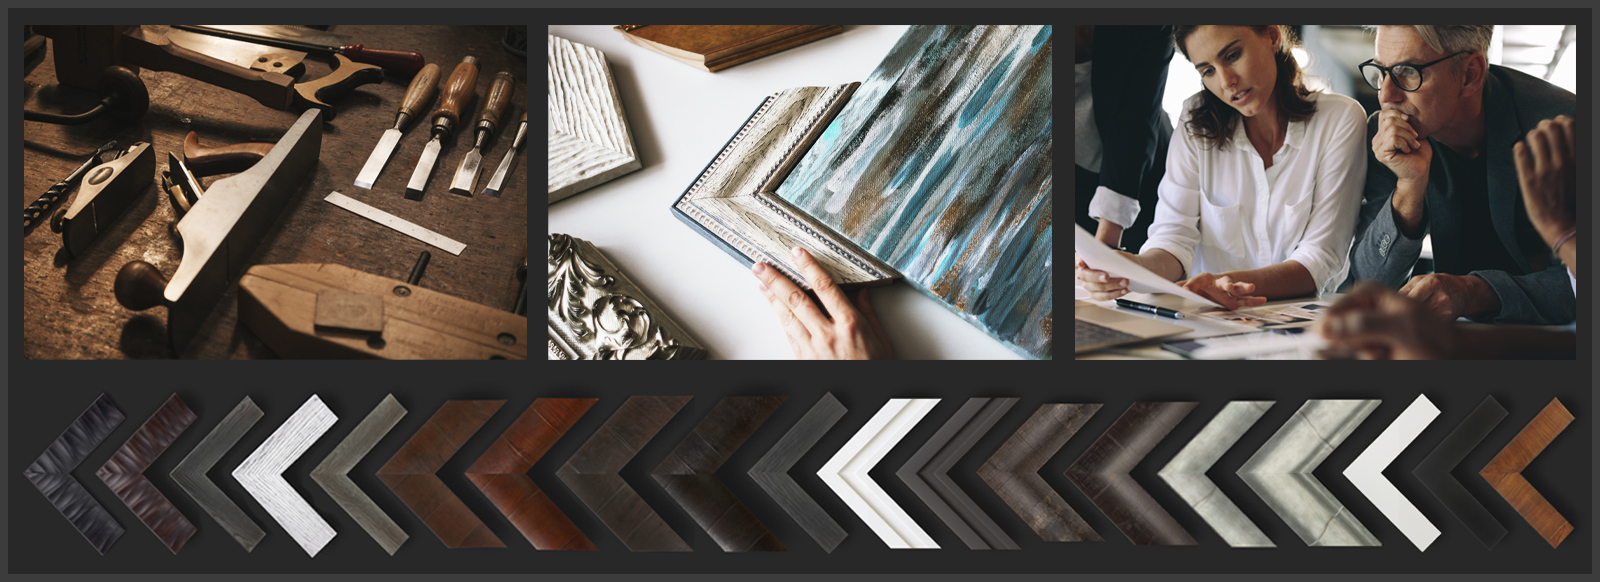 Collage of woodworking tools, people and picture frame samples for custom photo framing.